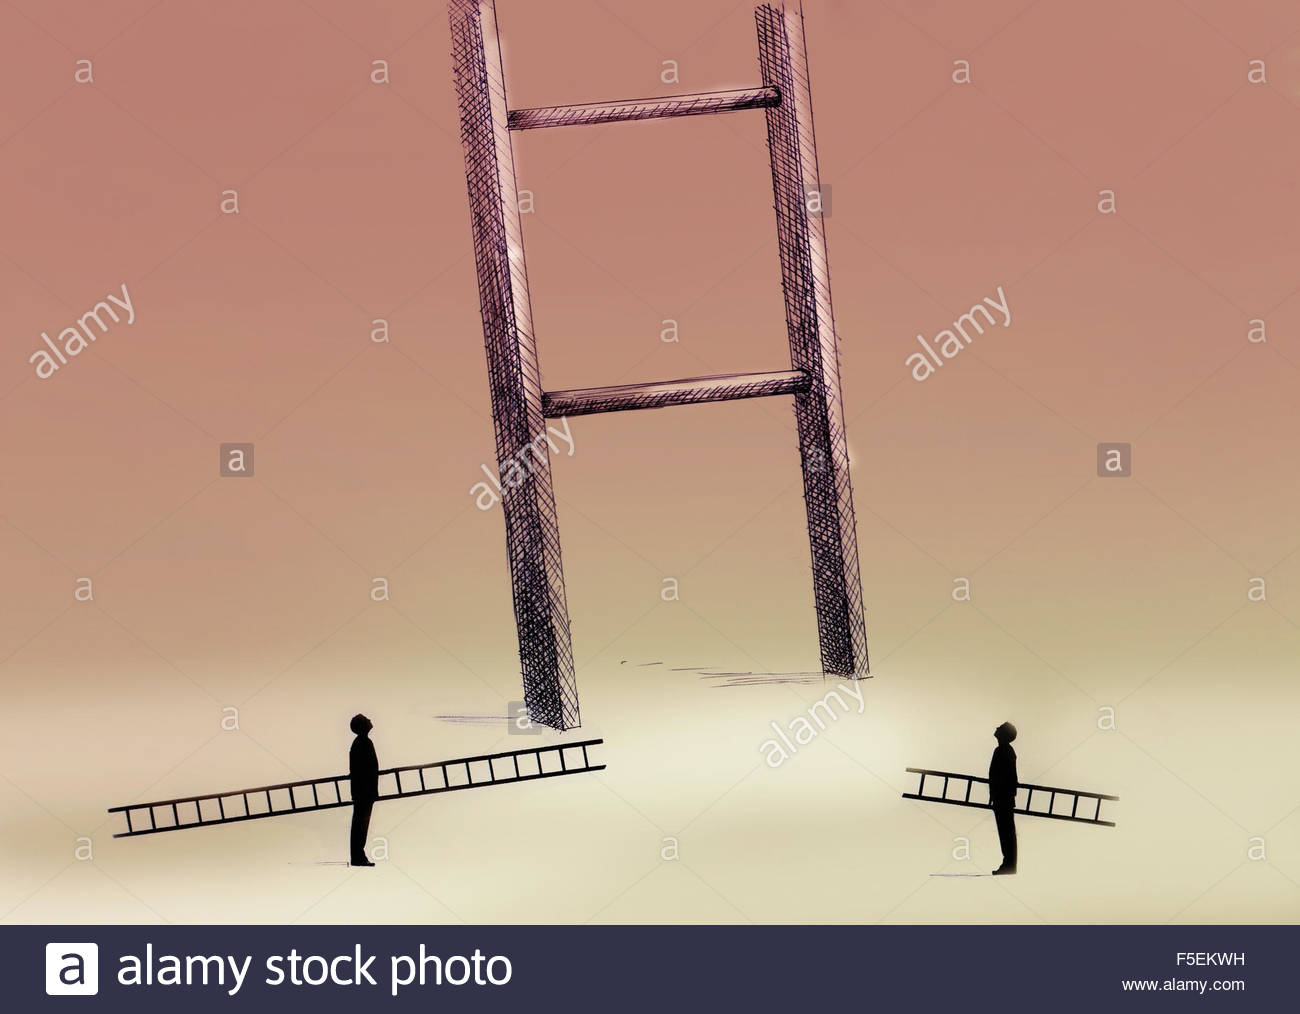 Two men with small ladders looking up at large ladder - Stock Image